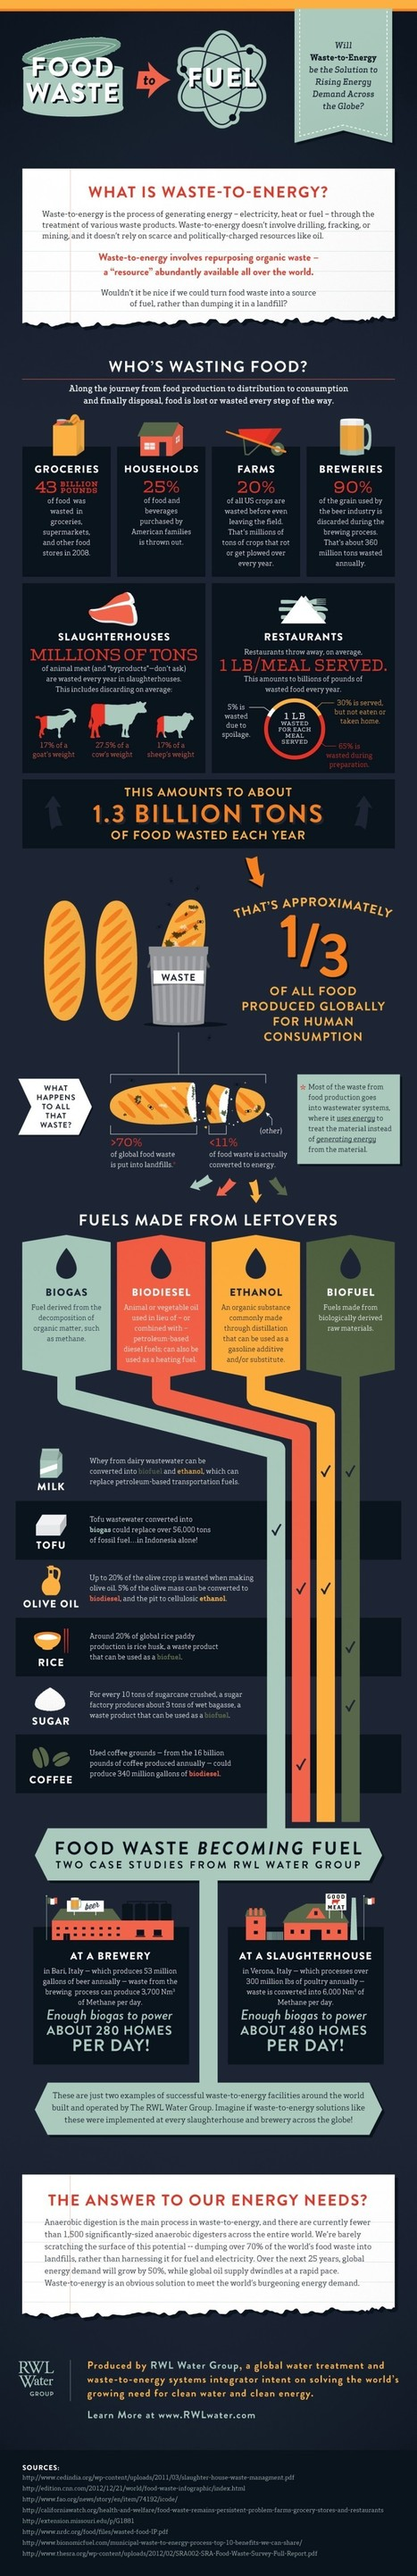 Food waste to fuel: An infographic | Food and Agriculture | Scoop.it